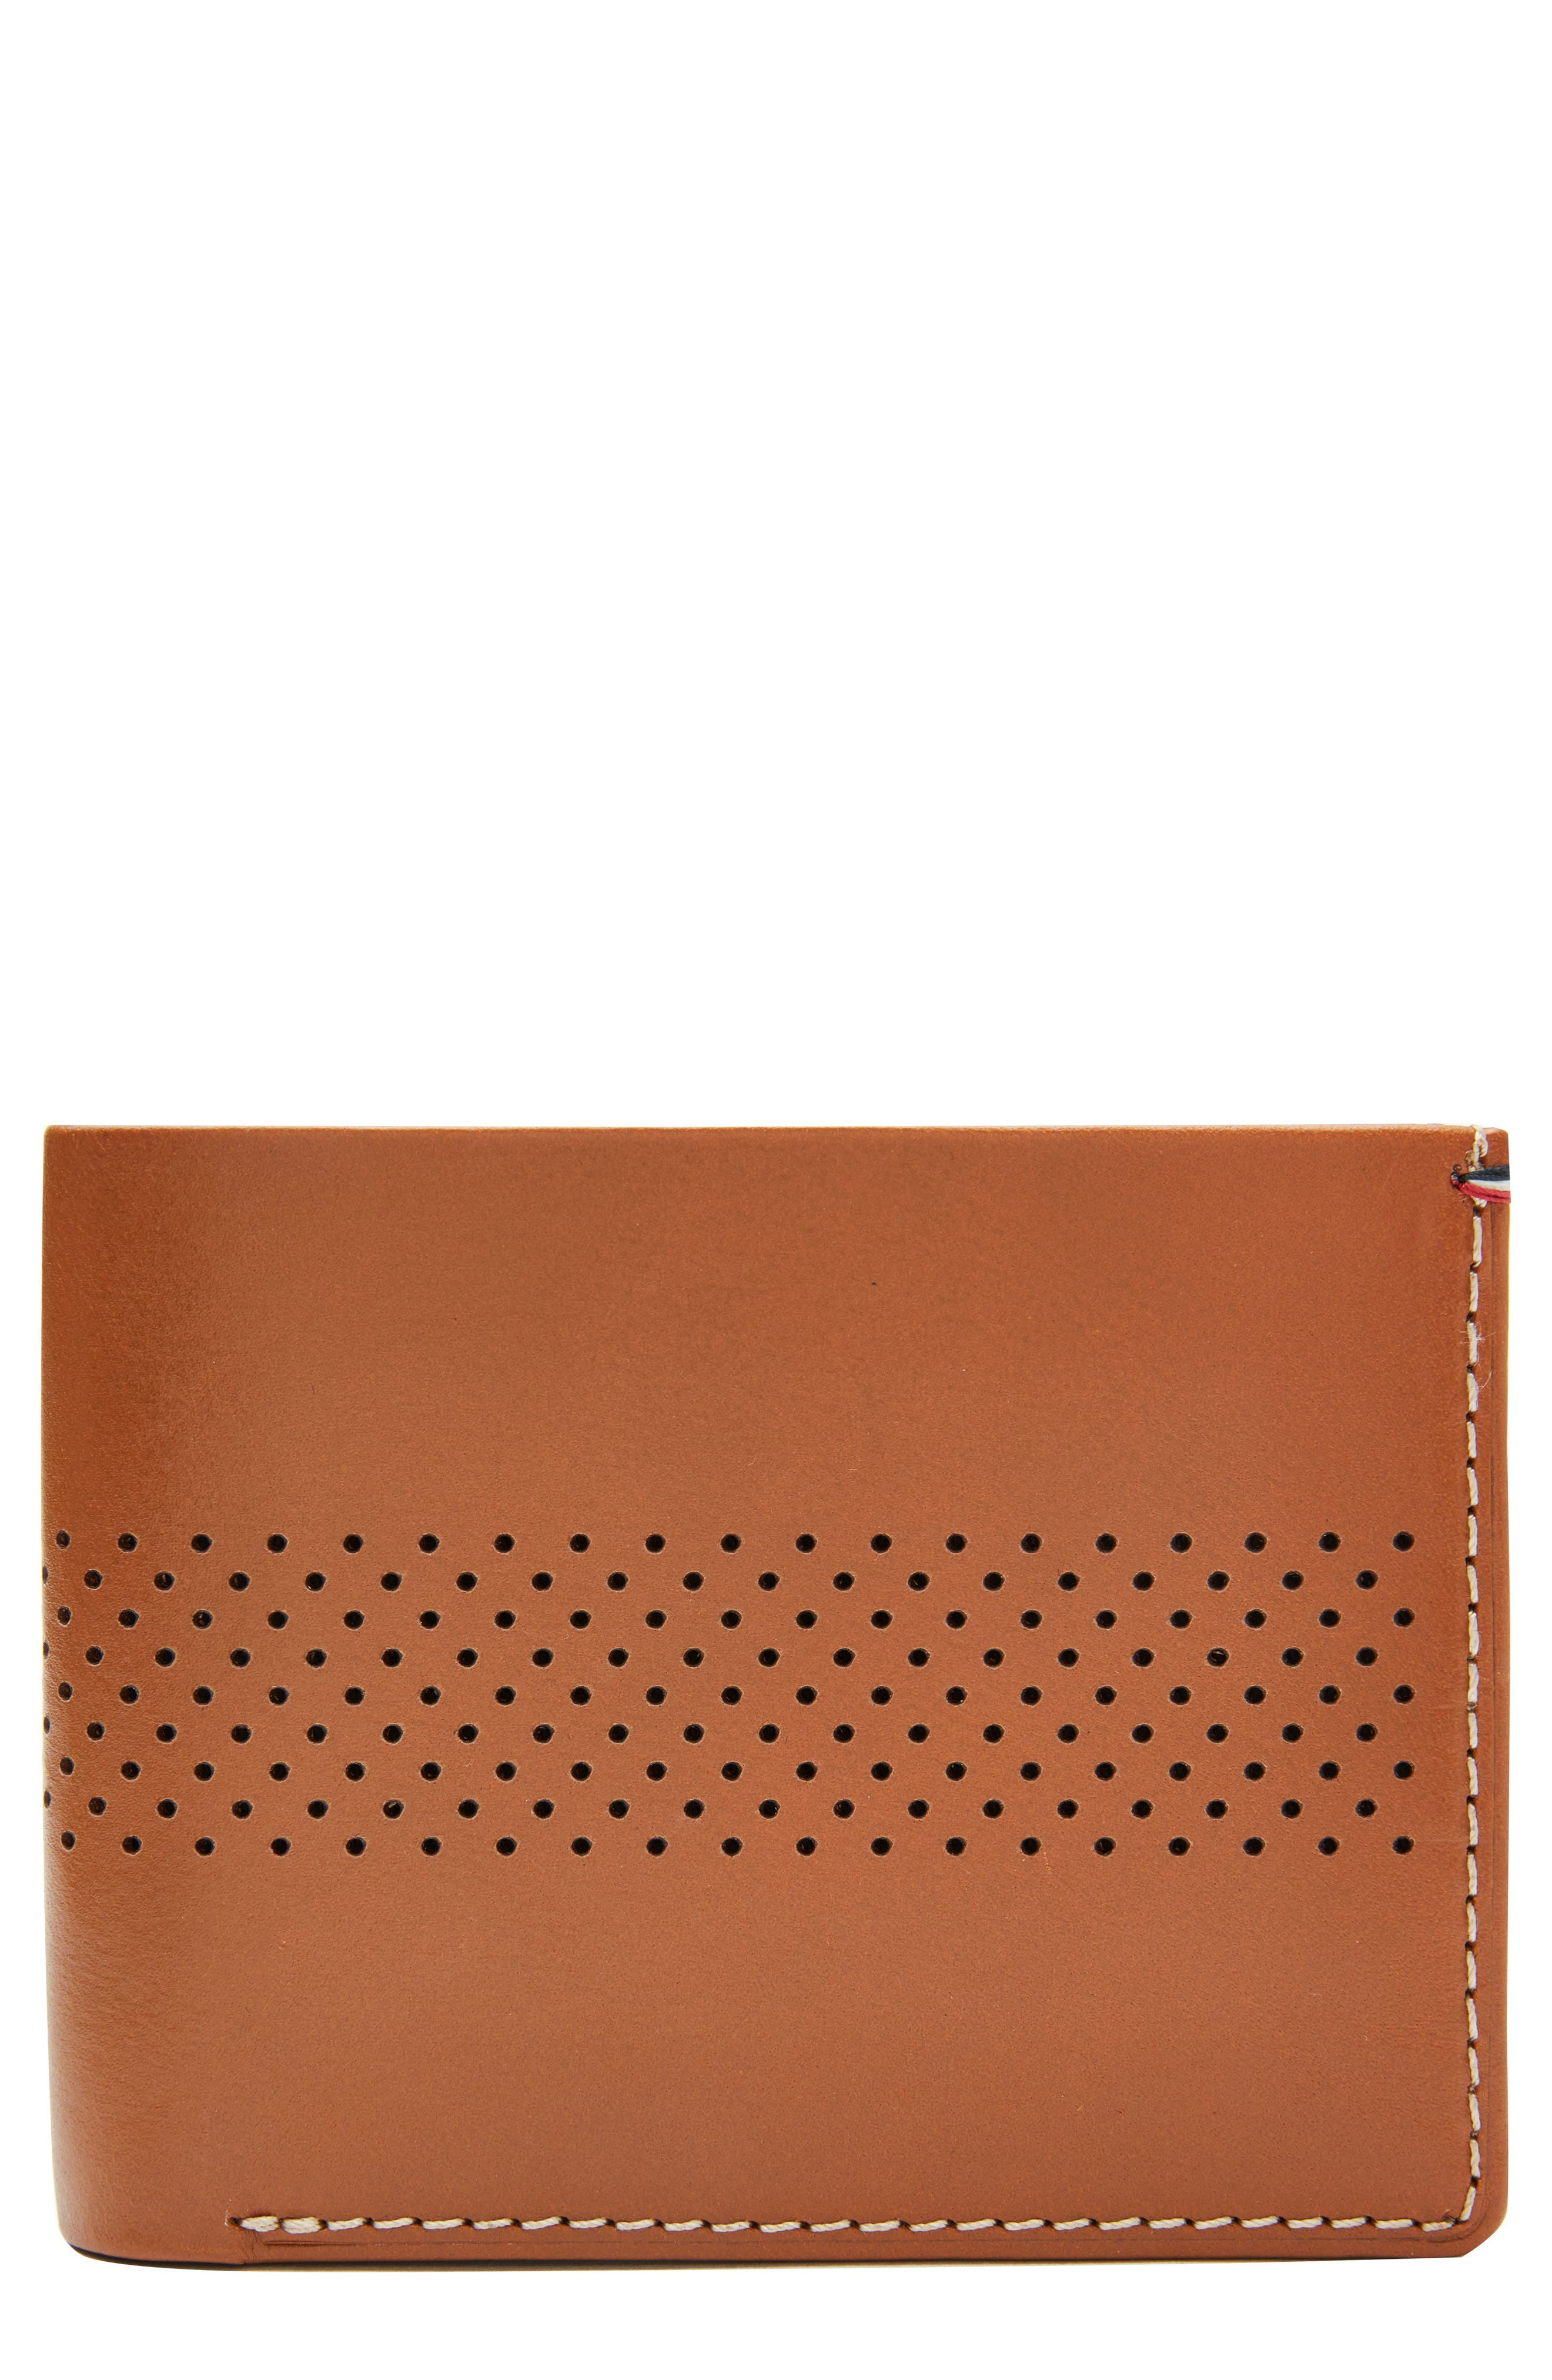 Leather Wallet,                             Main thumbnail 1, color,                             250